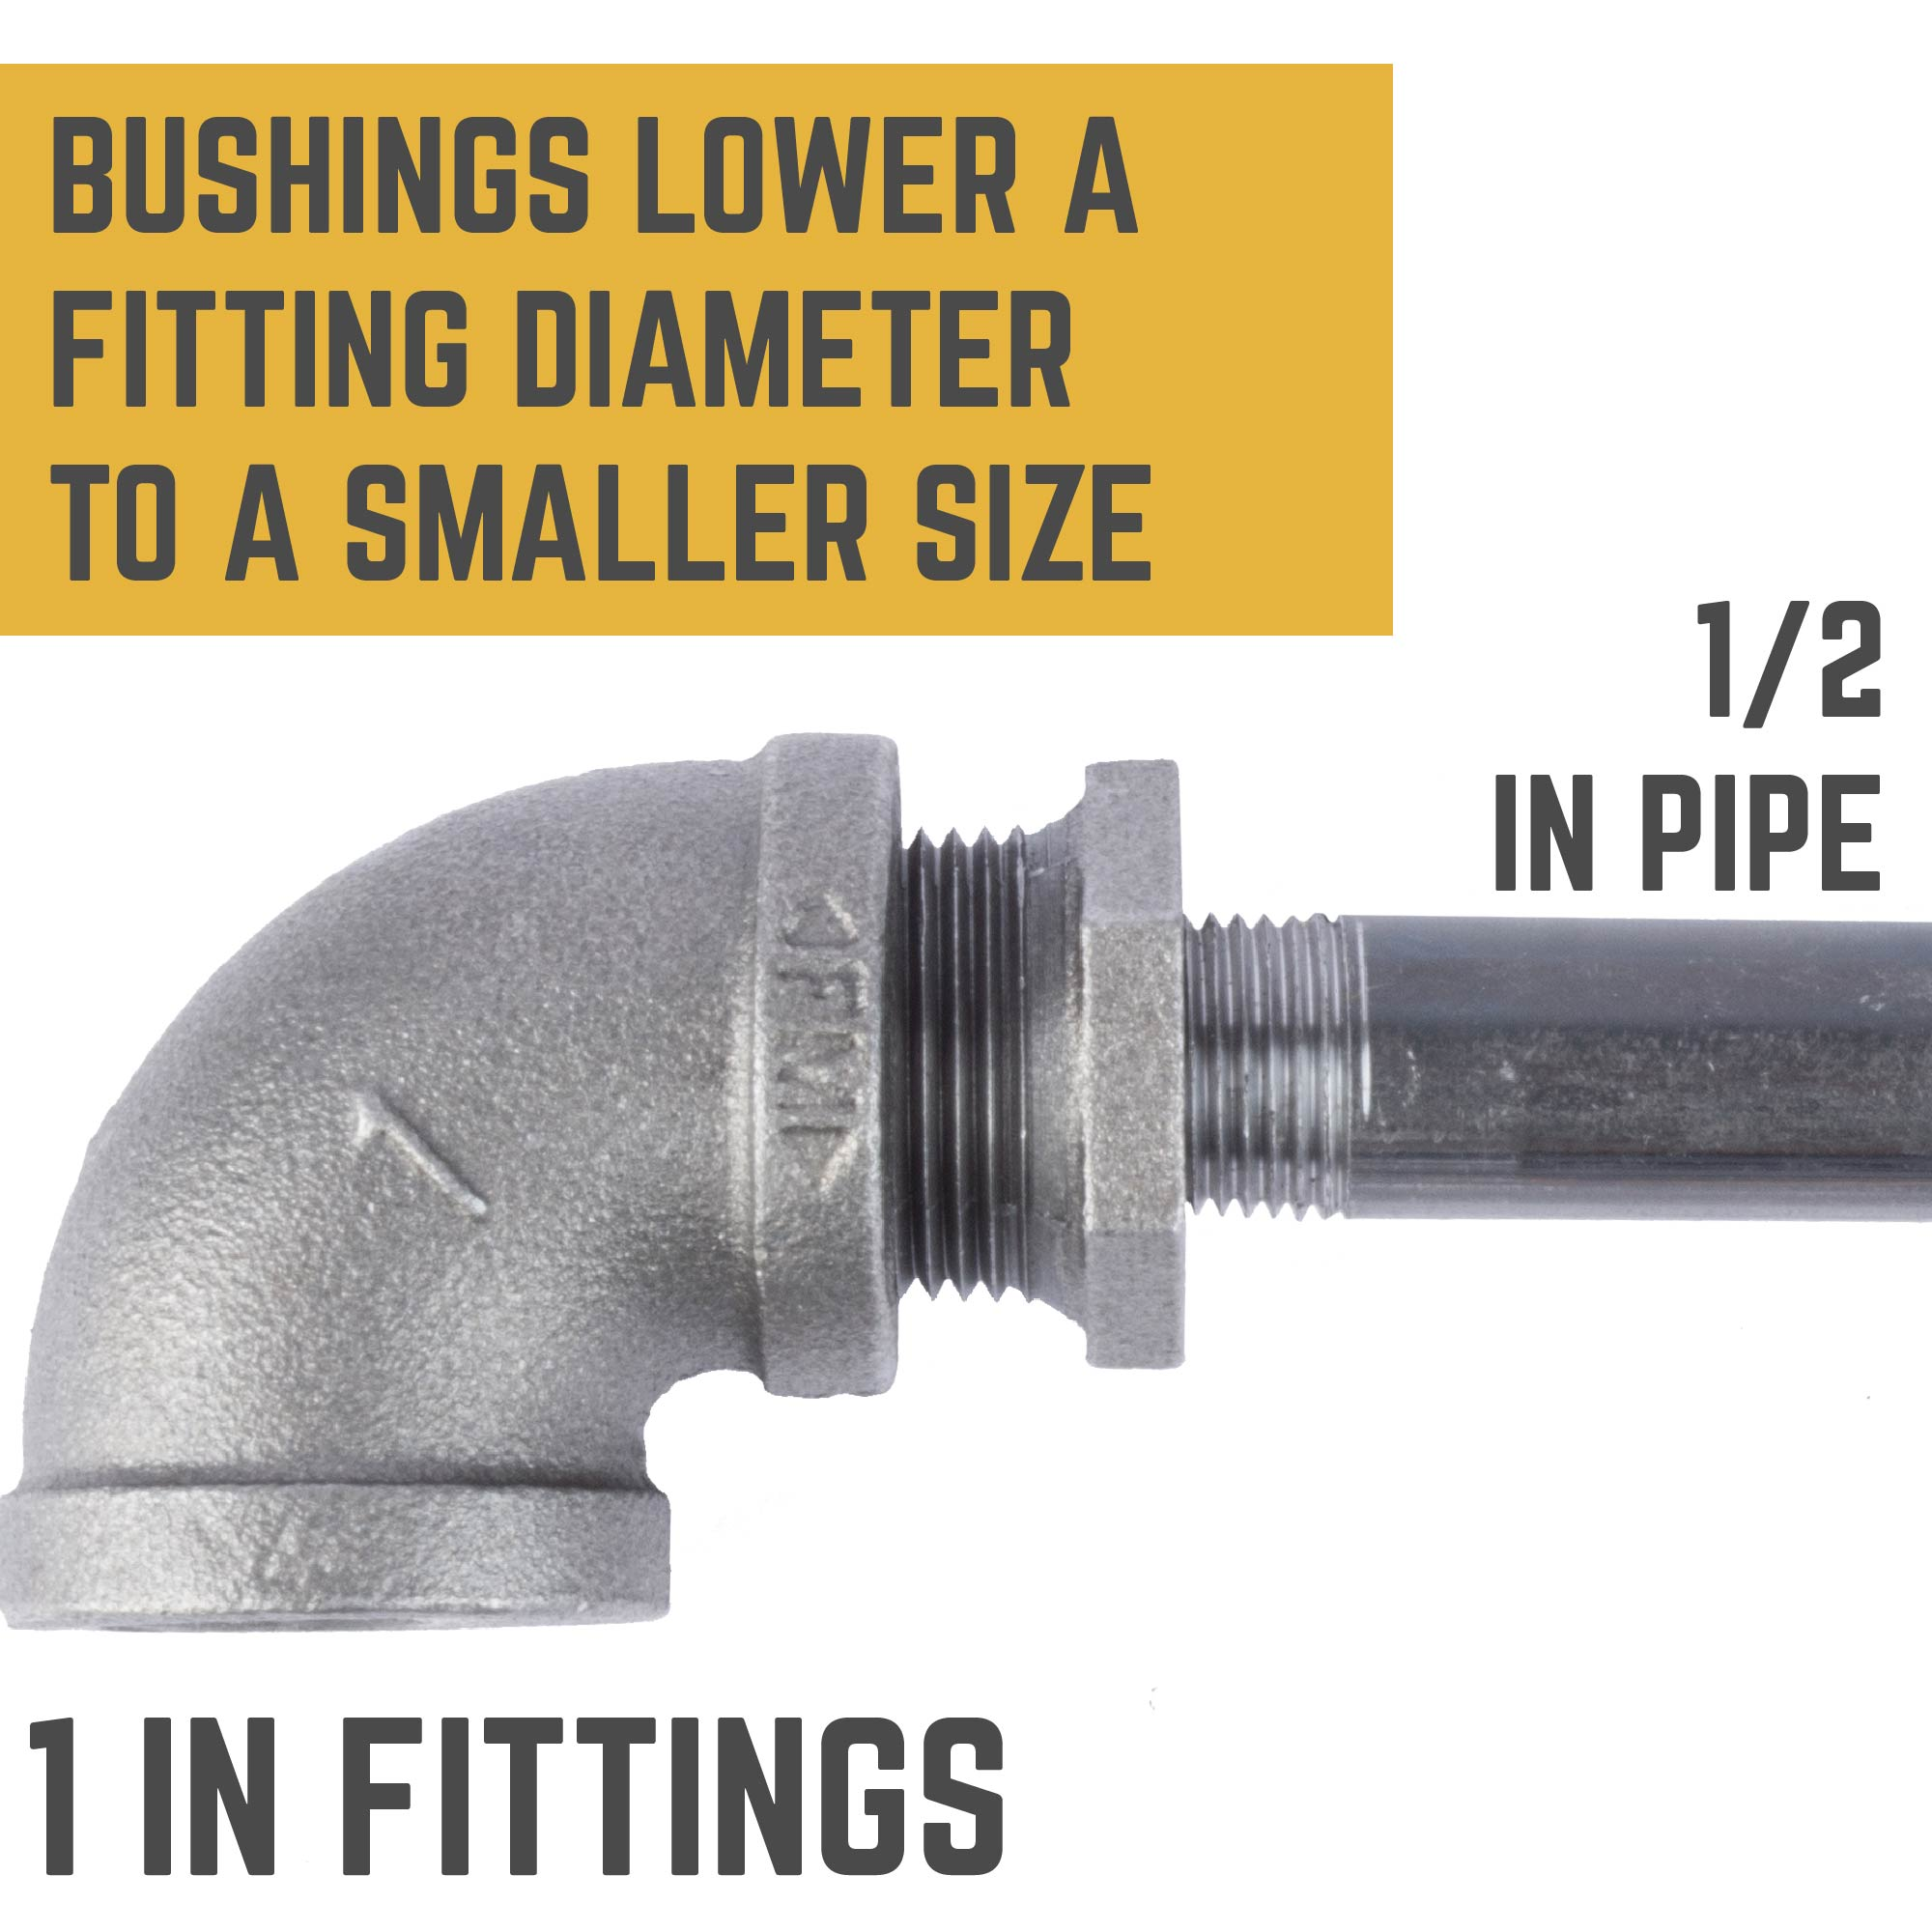 1 IN X 1/2 IN BUSHING